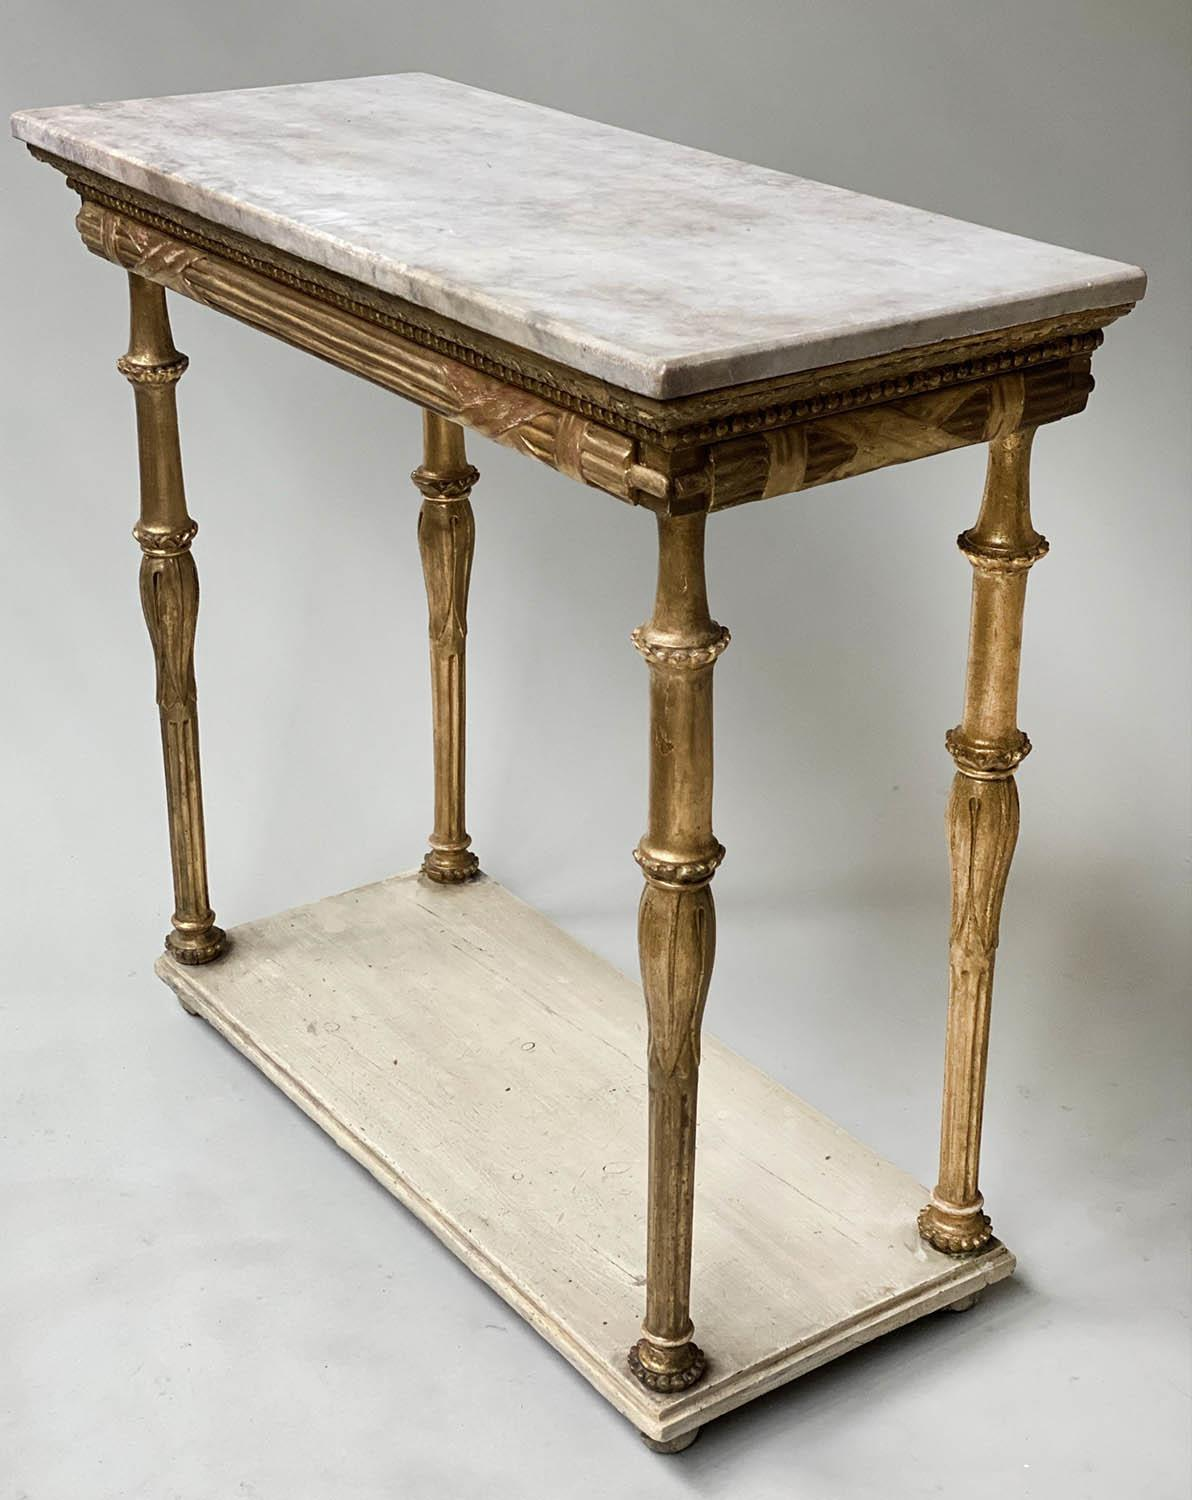 CONSOLE TABLE, early 19th century Italian giltwood with rectangular marble top above lappet and - Image 5 of 8